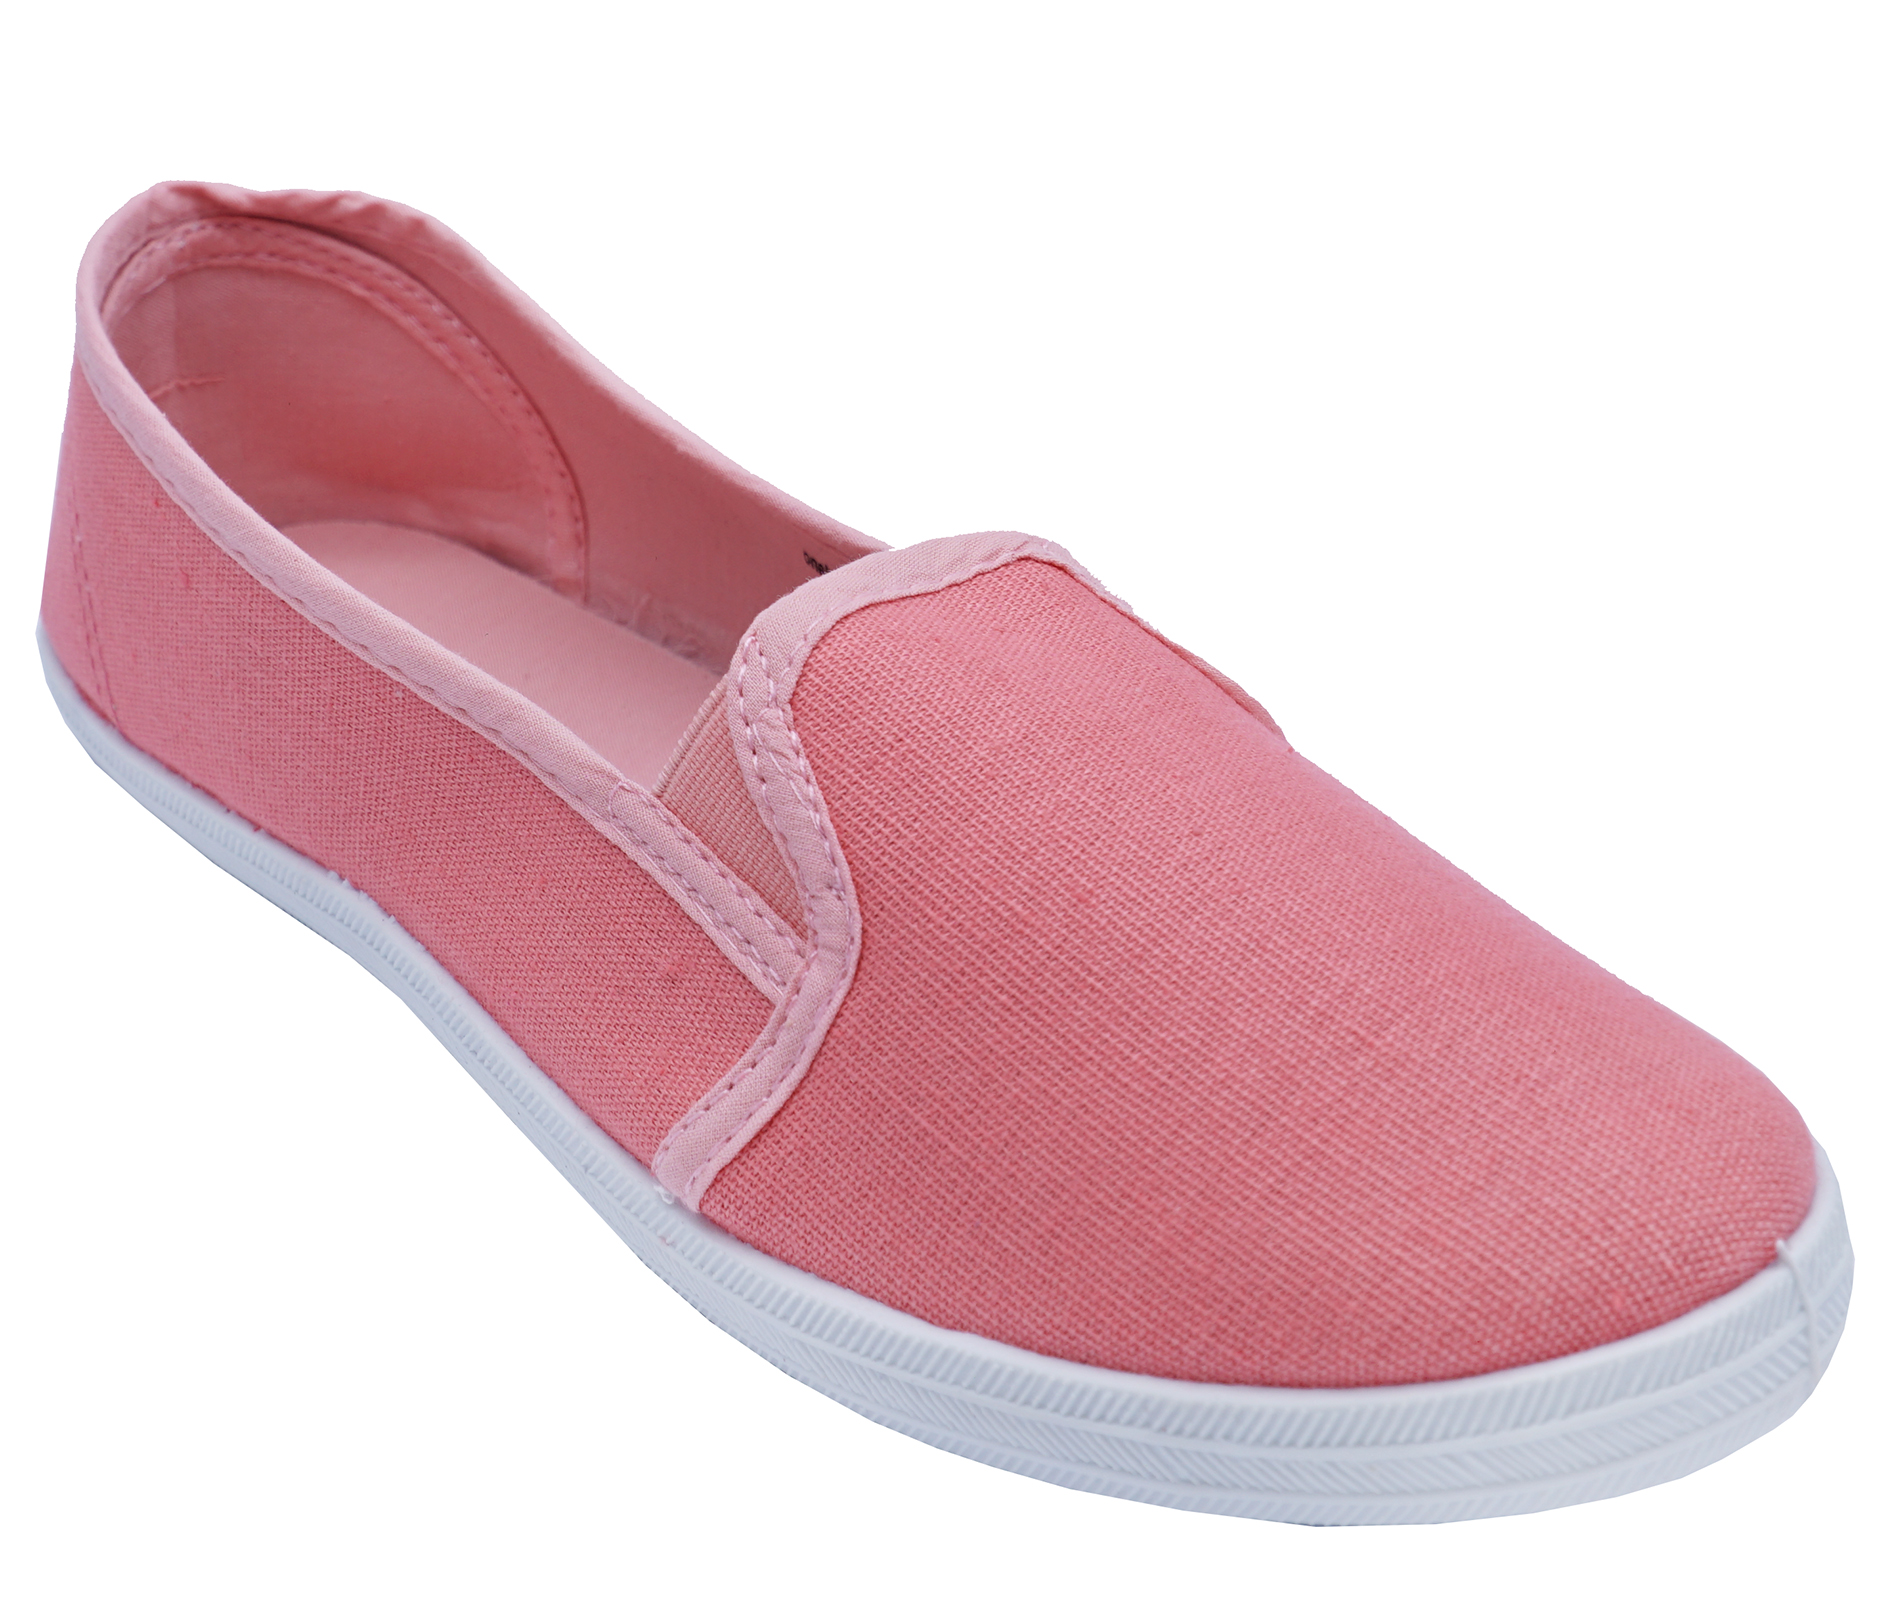 WOMENS PINK SATIN SLIP-ON TRAINERS CASUAL PUMPS PLIMSOLLS SPORTS SHOES 3-8